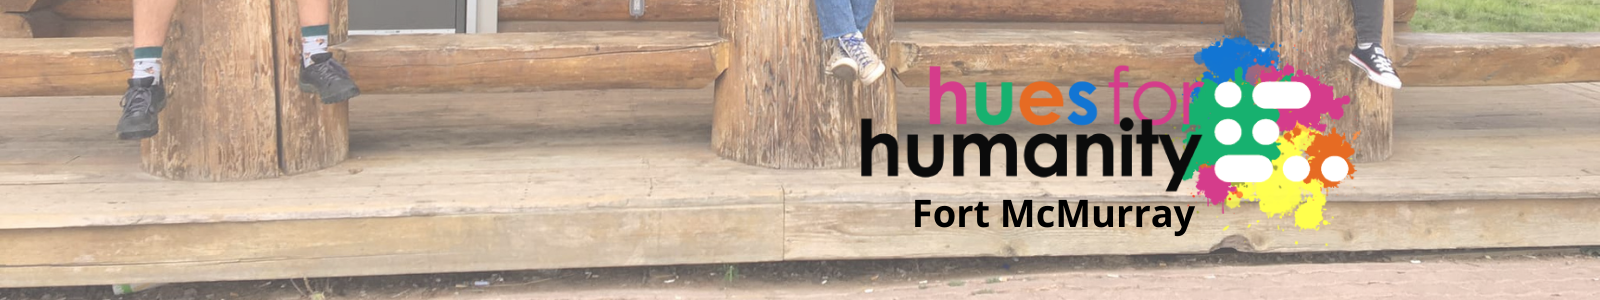 Hues for Humanity - Fort McMurray